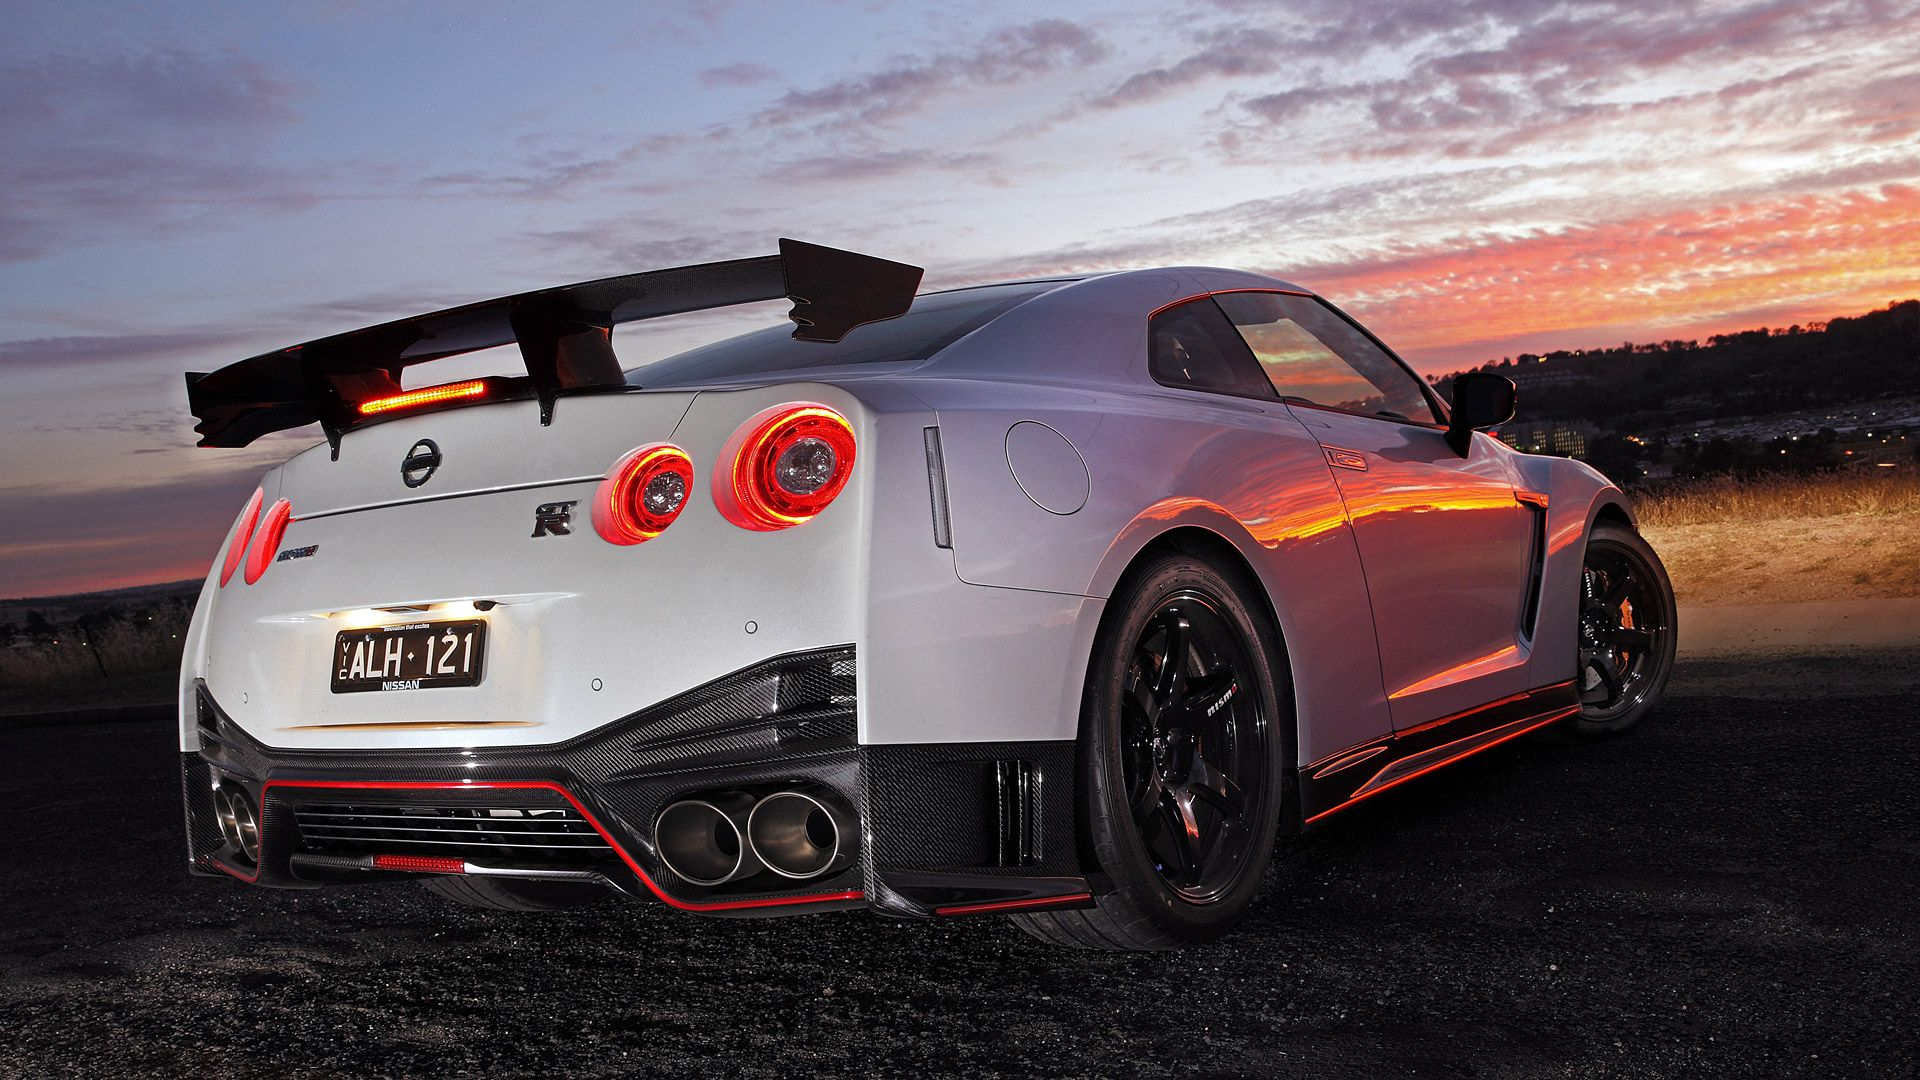 Nissan Gtr Nismo Wallpaper Desktop Background (With images